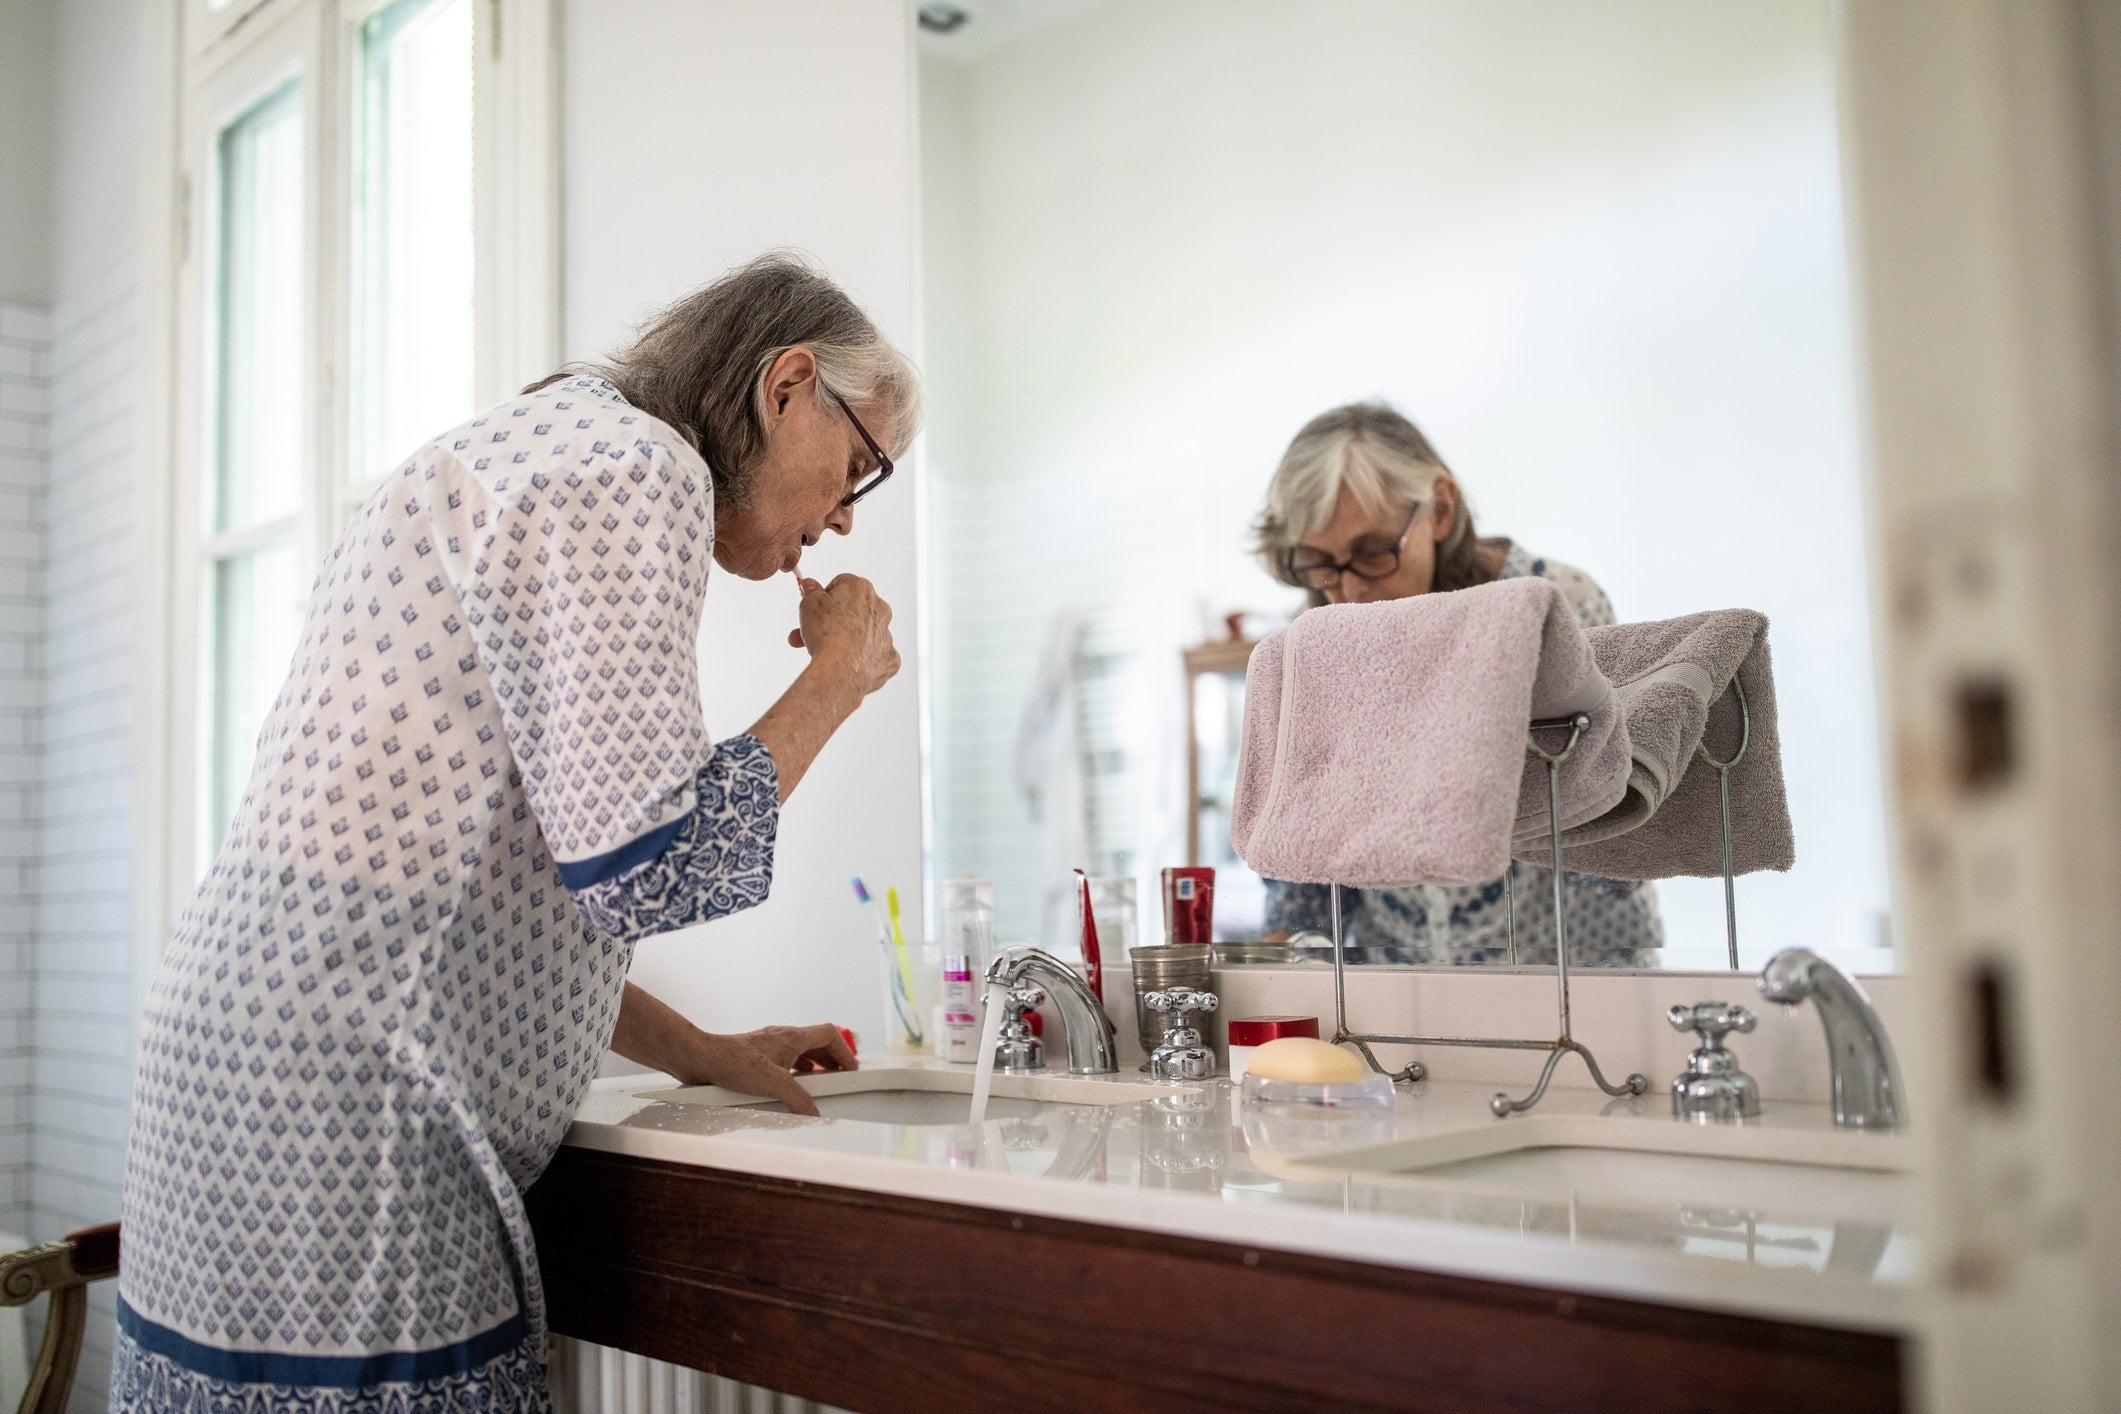 A Bathroom and Shower Safety Guide for Seniors